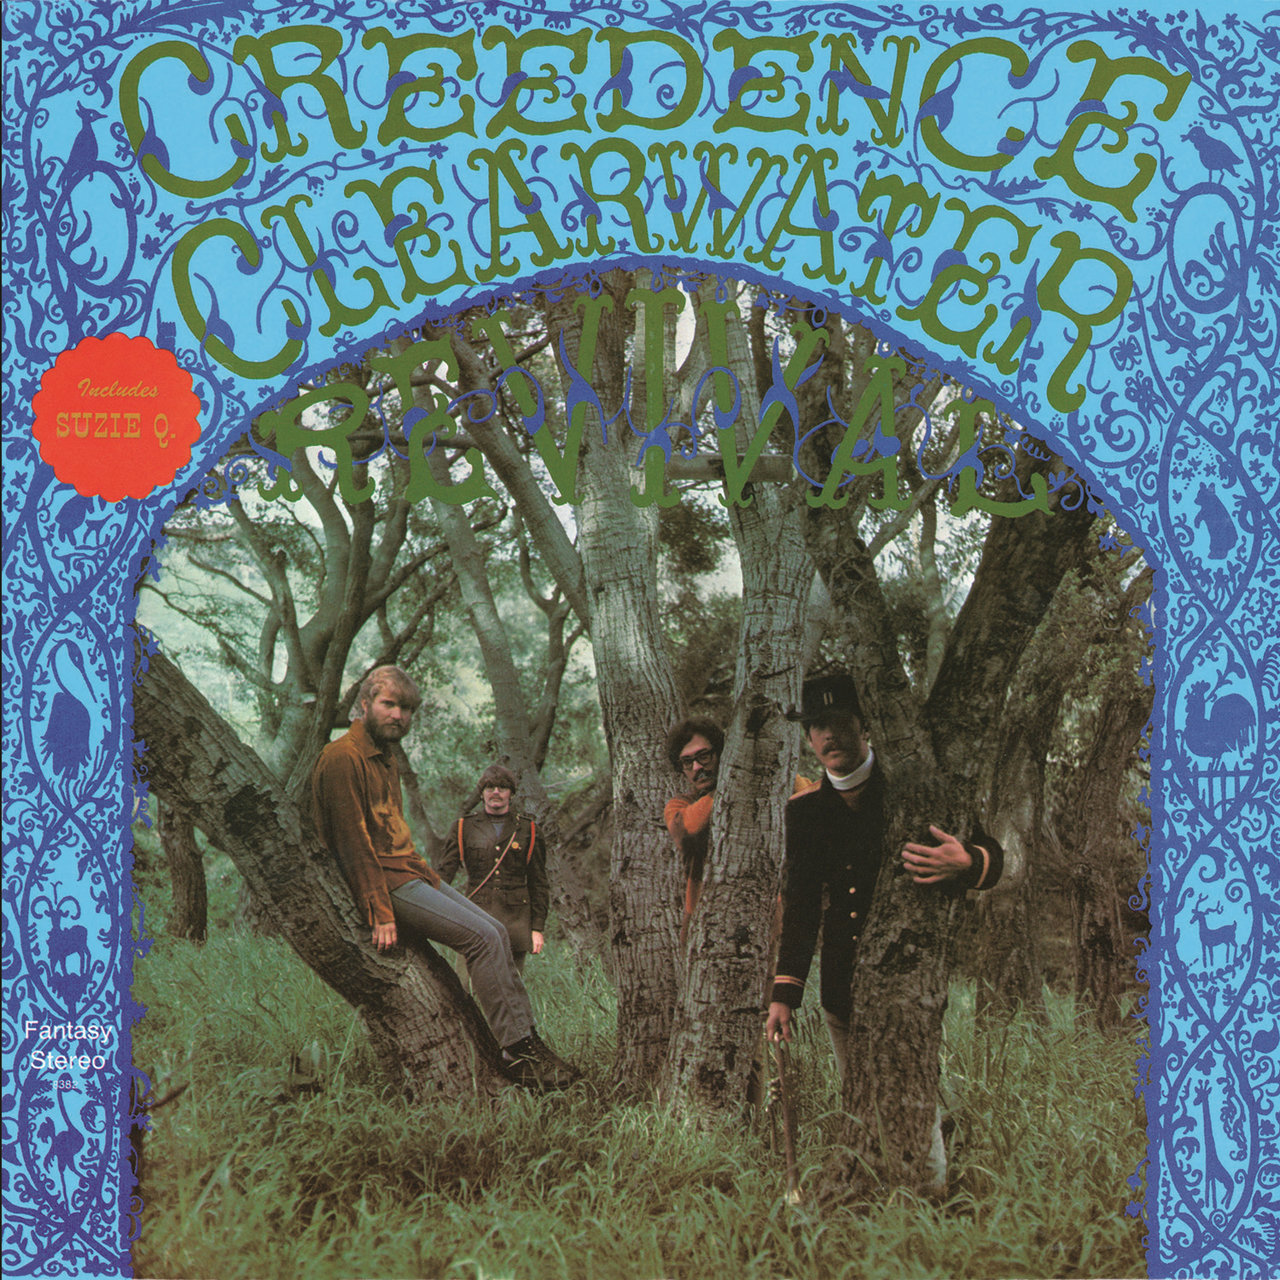 Album review: creedence clearwater revivial – 40th anniversary.